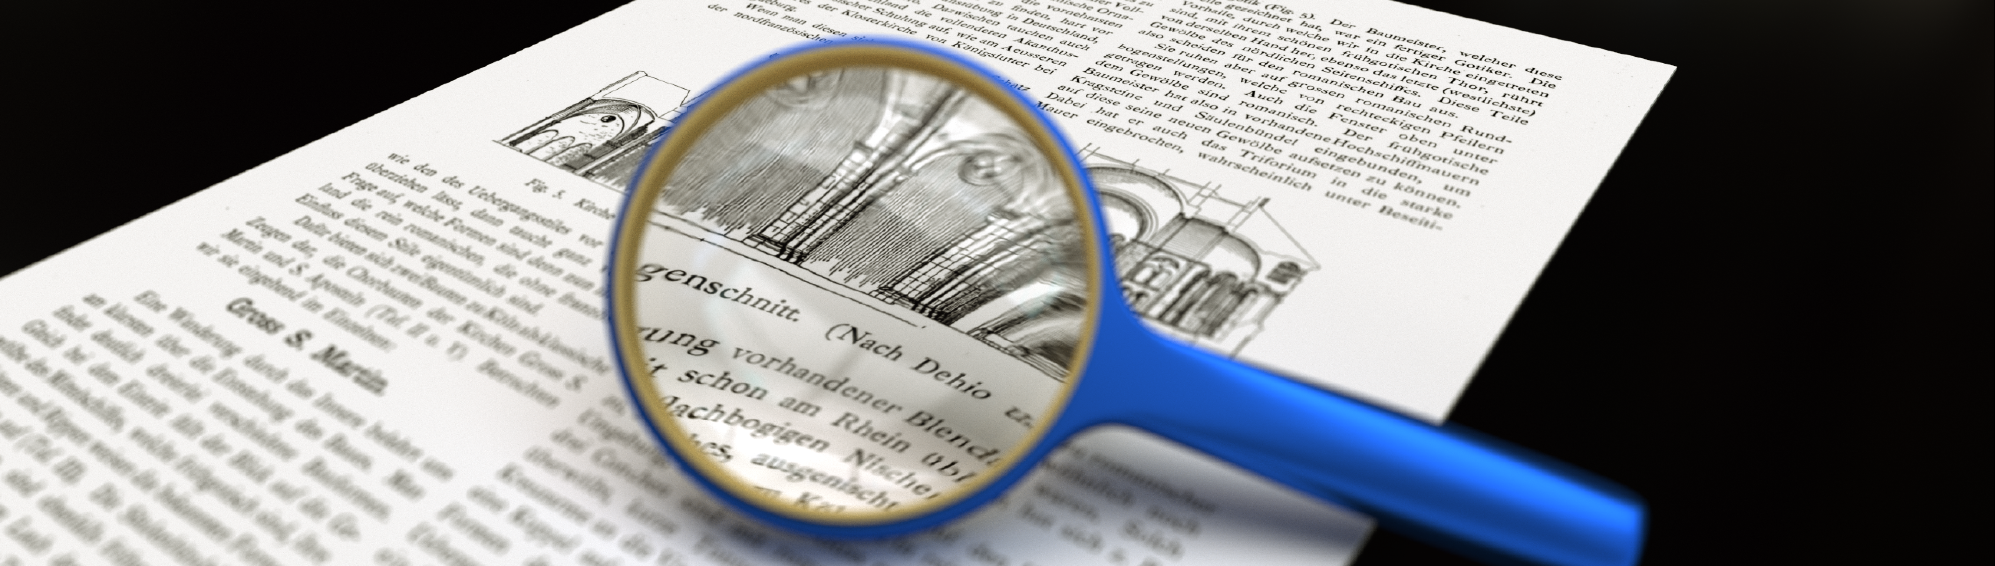 Magnifying_glass_with_focus_on_paper cropped 2600x738